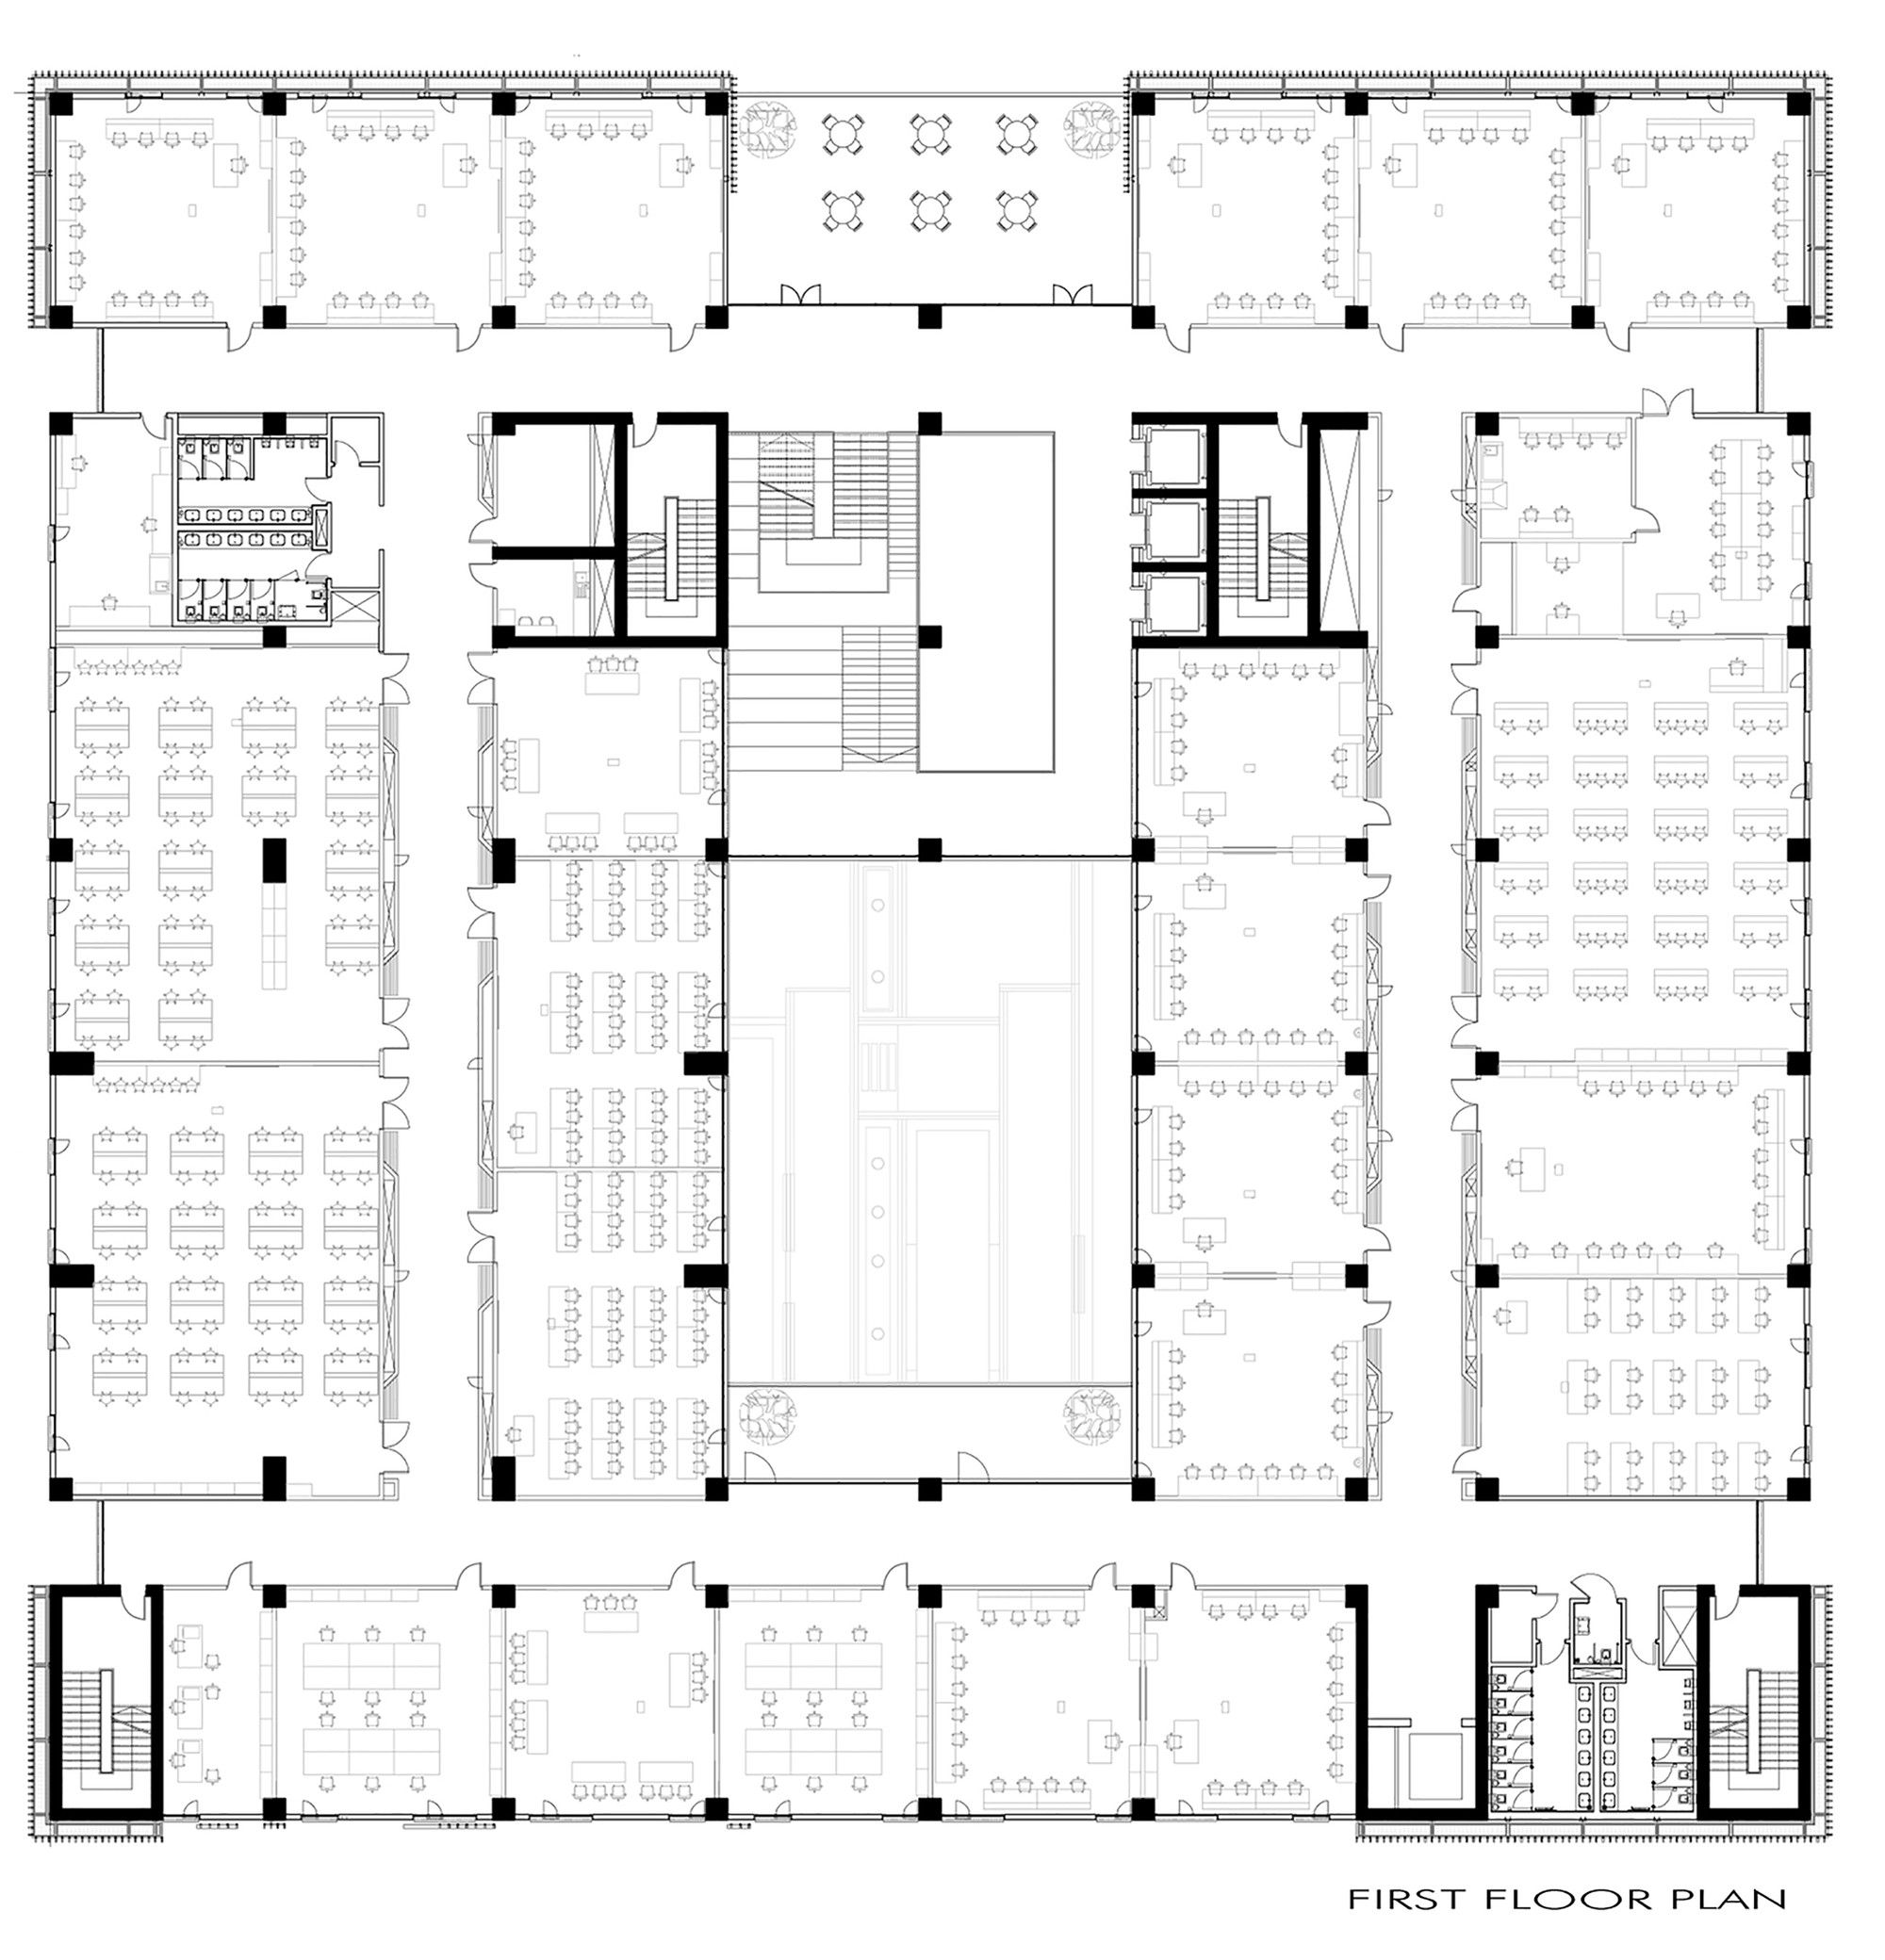 Tobb Etü Technology Center,First Floor Plan | Teino's technicality: https://www.pinterest.com/pin/368943394455104110/ | Re subsidiary: iTB Software Technologies factory interior architectural presentation (via link) enculpulating one building block complex of three at prototype base of M-form Teino's Corp C.A: https://www.pinterest.com/pin/368943394455109938/